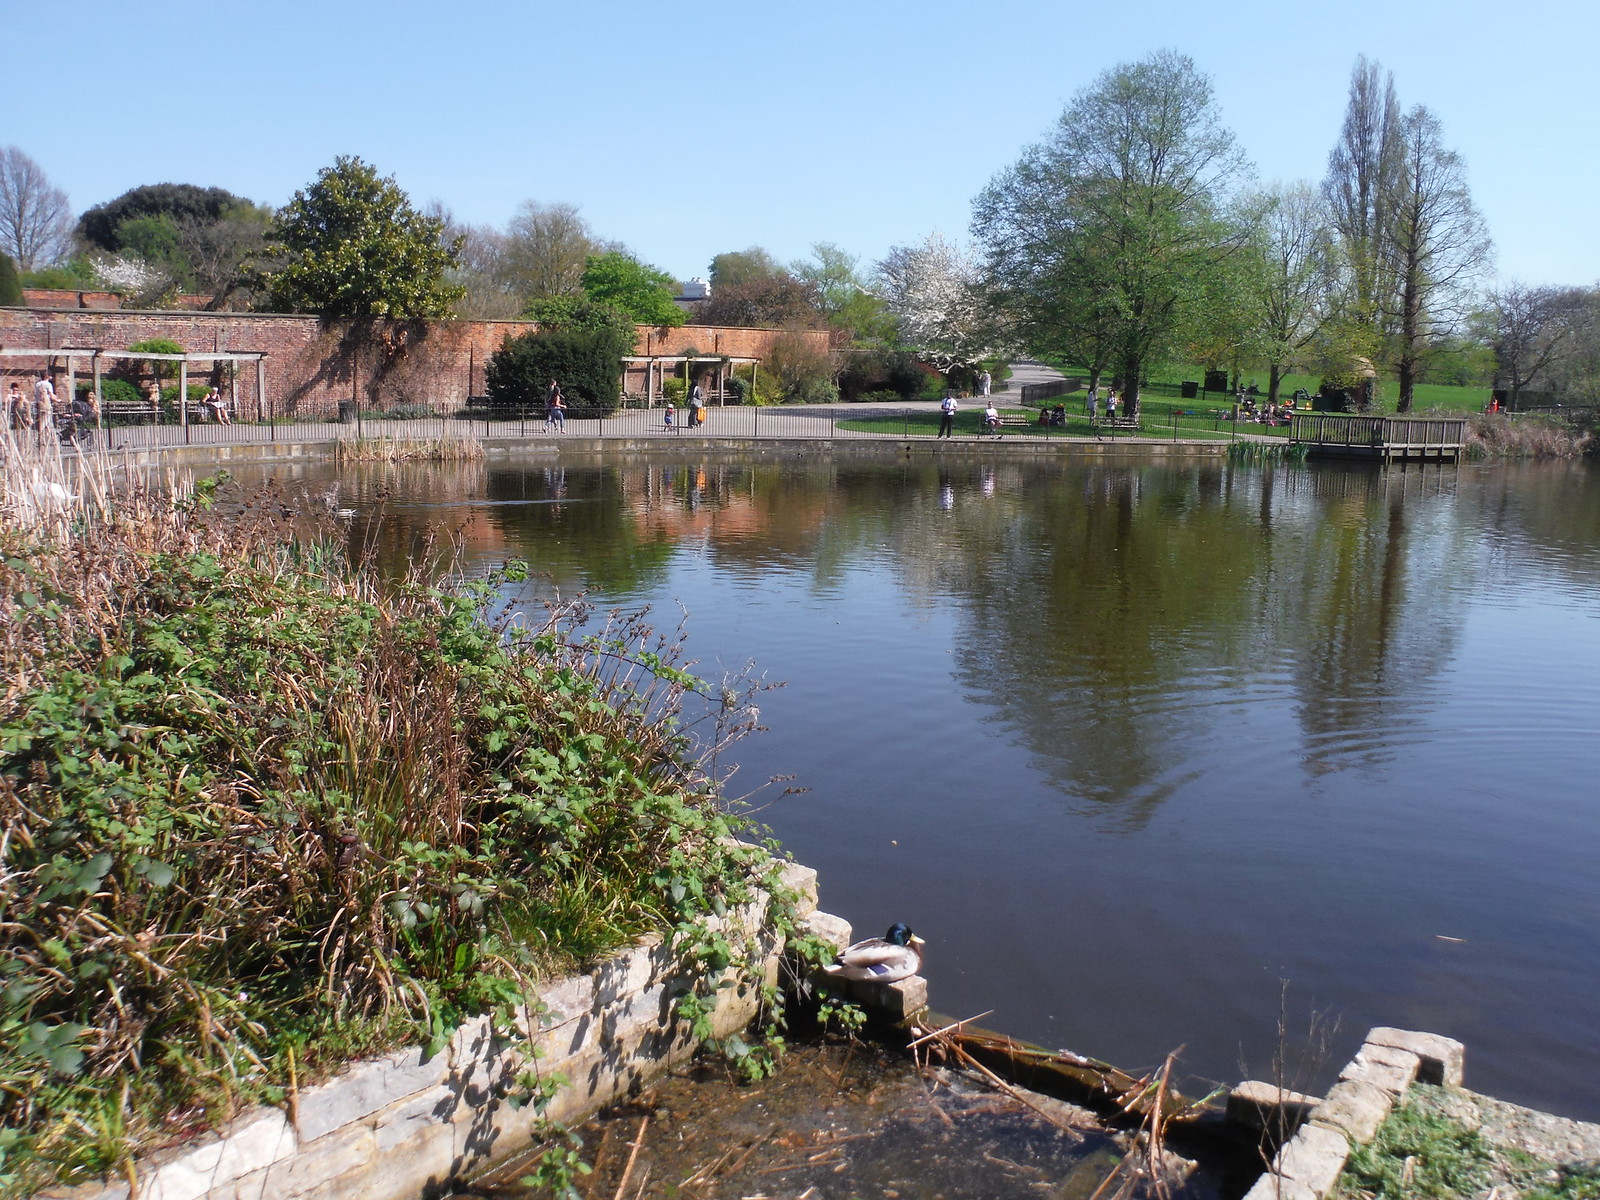 Pond 3 fed by Effra Tributary, Brockwell Park SWC Short Walk 39 - Brockwell Park (Herne Hill Circular or to Brixton)